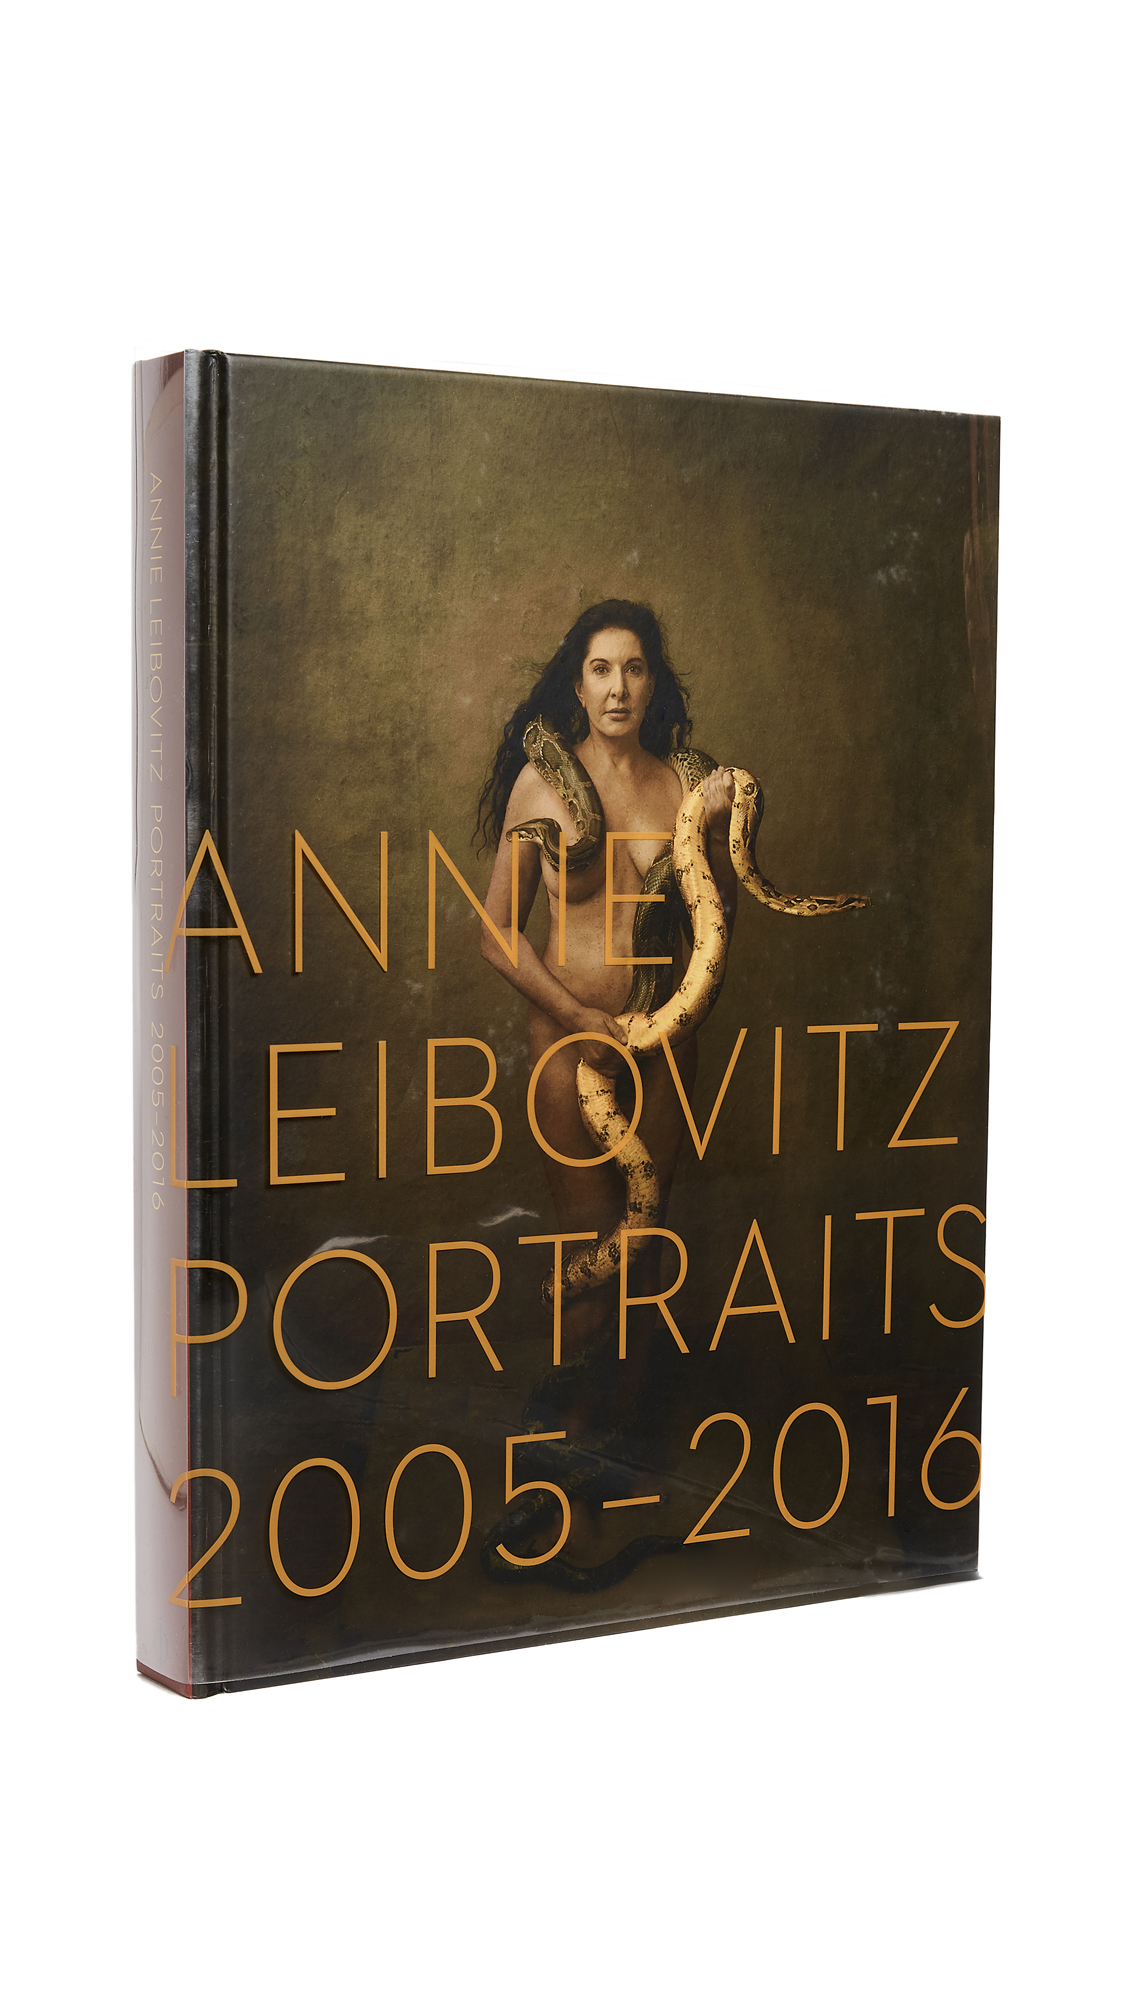 Imported, China By Annie Leibovitz Hardcover 316 pages Imprint: Phaidon Press ISBN: 978-0-7148-7513-2 Measurements Width: 11in / 28cm Height: 14.5in / 37cm Length: 1.5in / 4cm